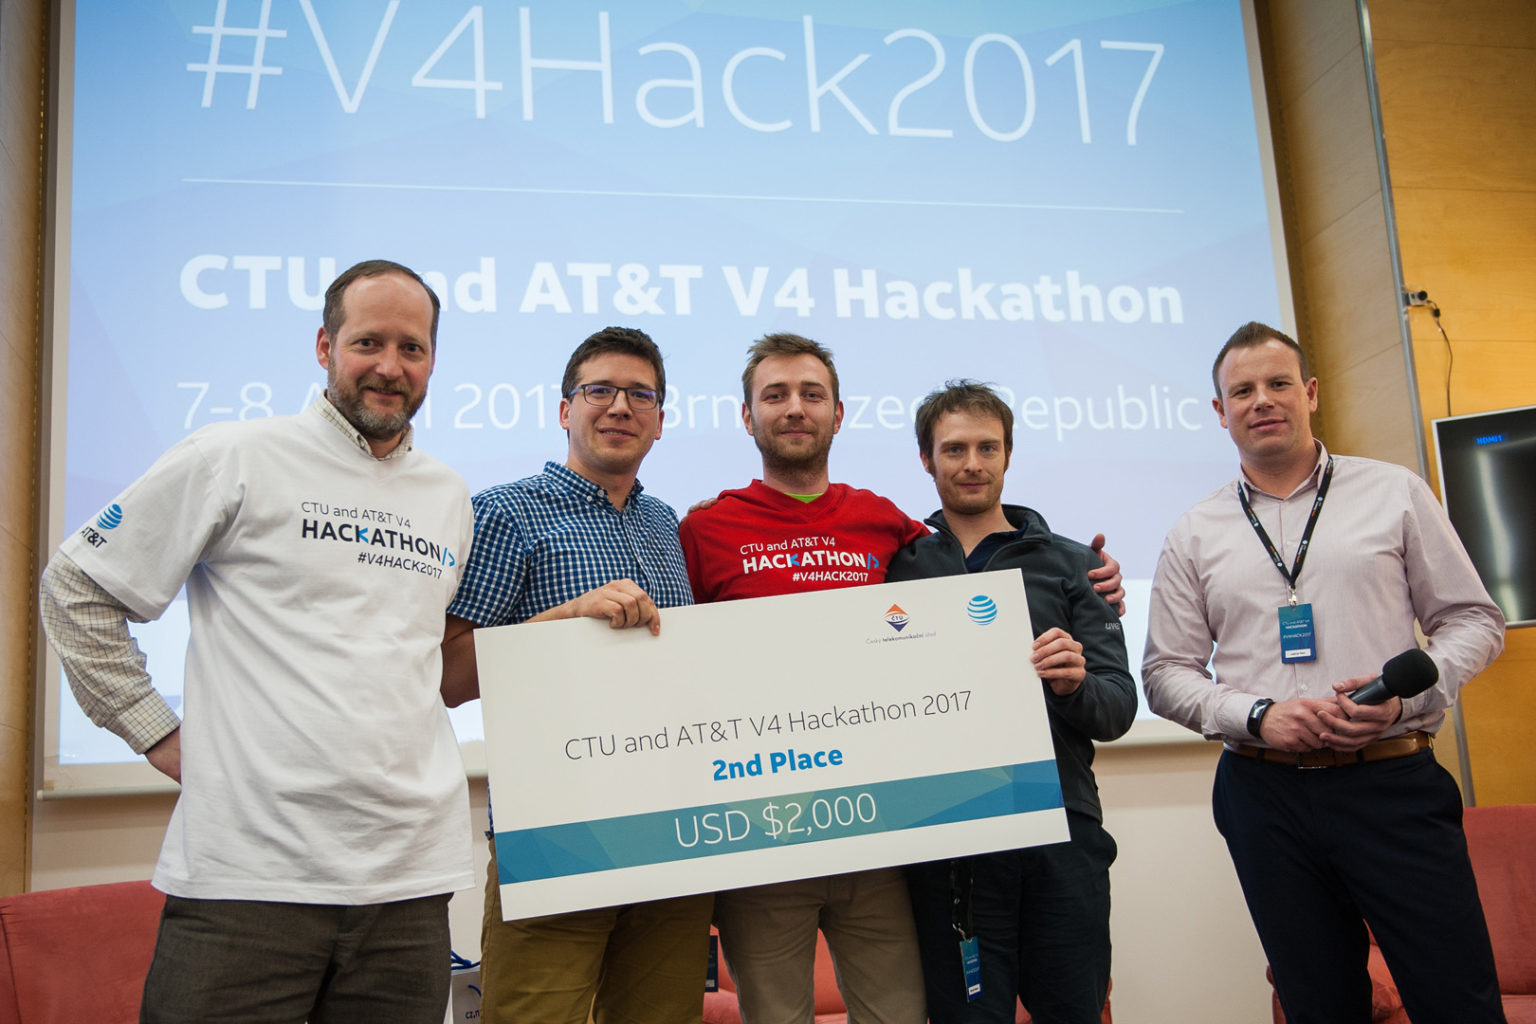 V4 Hackathon 2017 Brno Holiday Inn Winners 2nd place